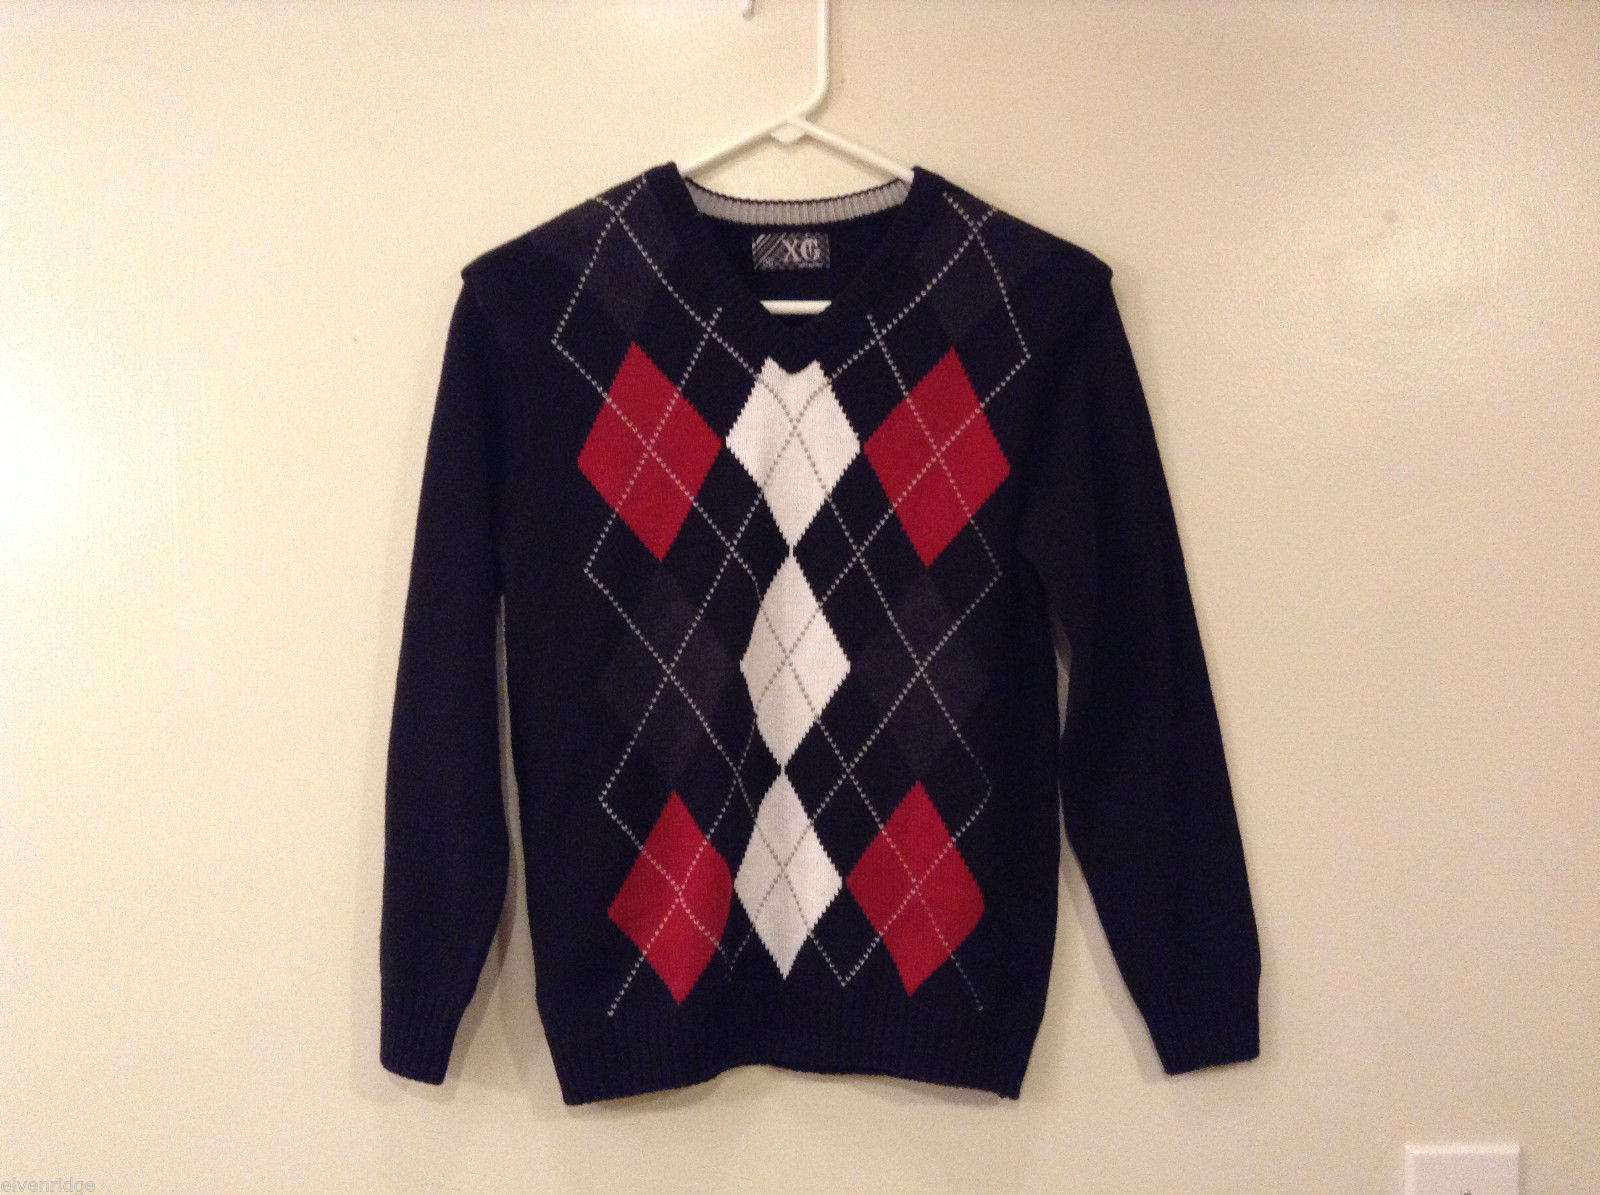 Boy's XG Black Sweater V-Neck Diamont Pattern on front size M (10-12)